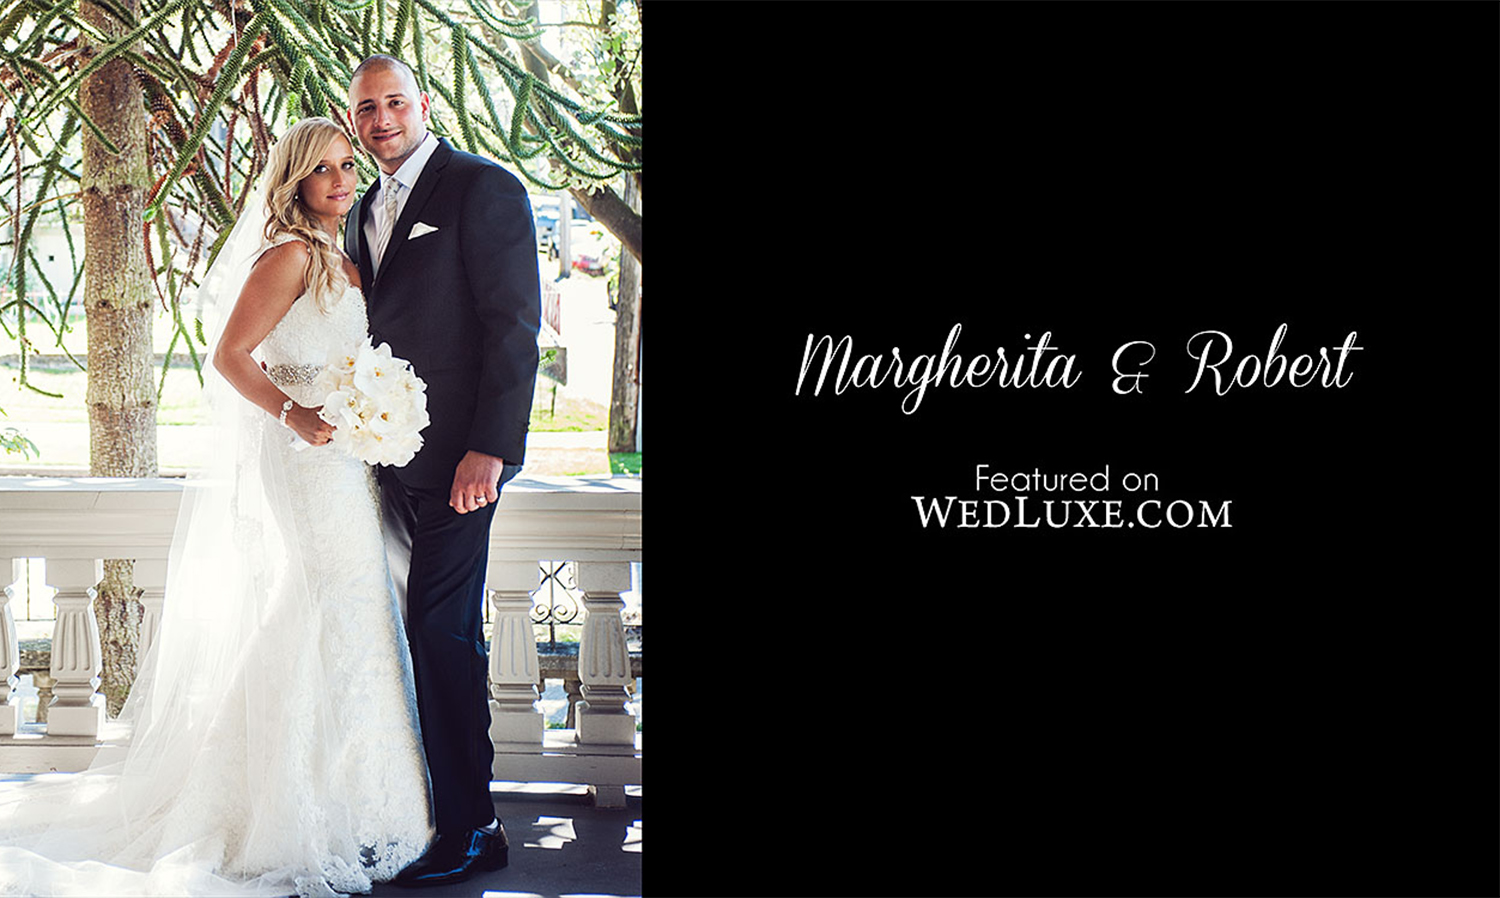 Margherita-Rob-Italian-Cultural-Centre-Wedluxe-Feature-Yaletown-Photography-cover.jpg